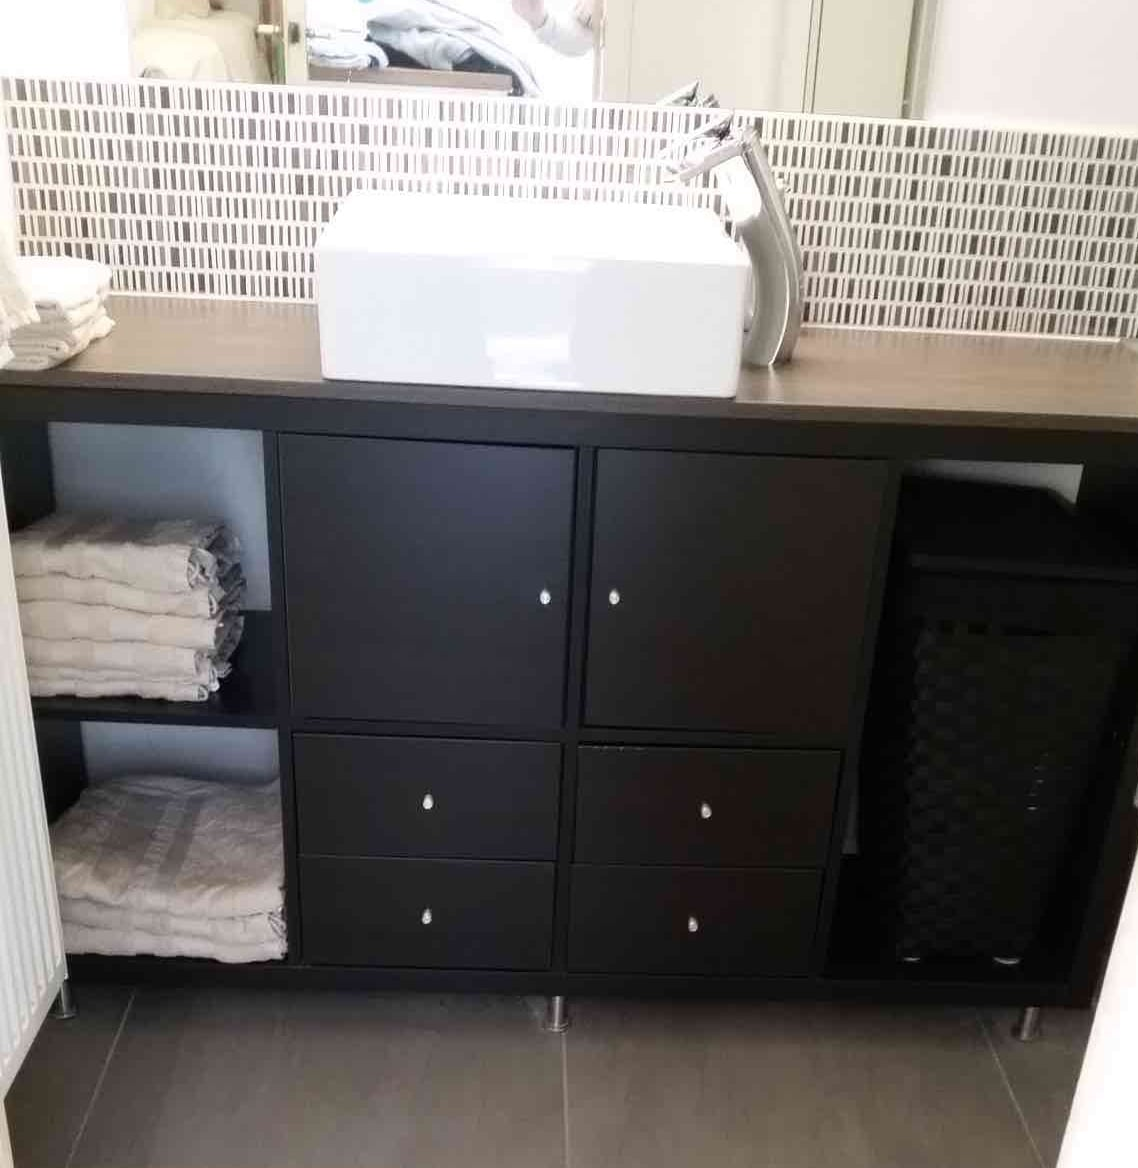 Kallax bathroom vanity for small bathroom ikea hackers - Bathroom vanities for small bathrooms ...